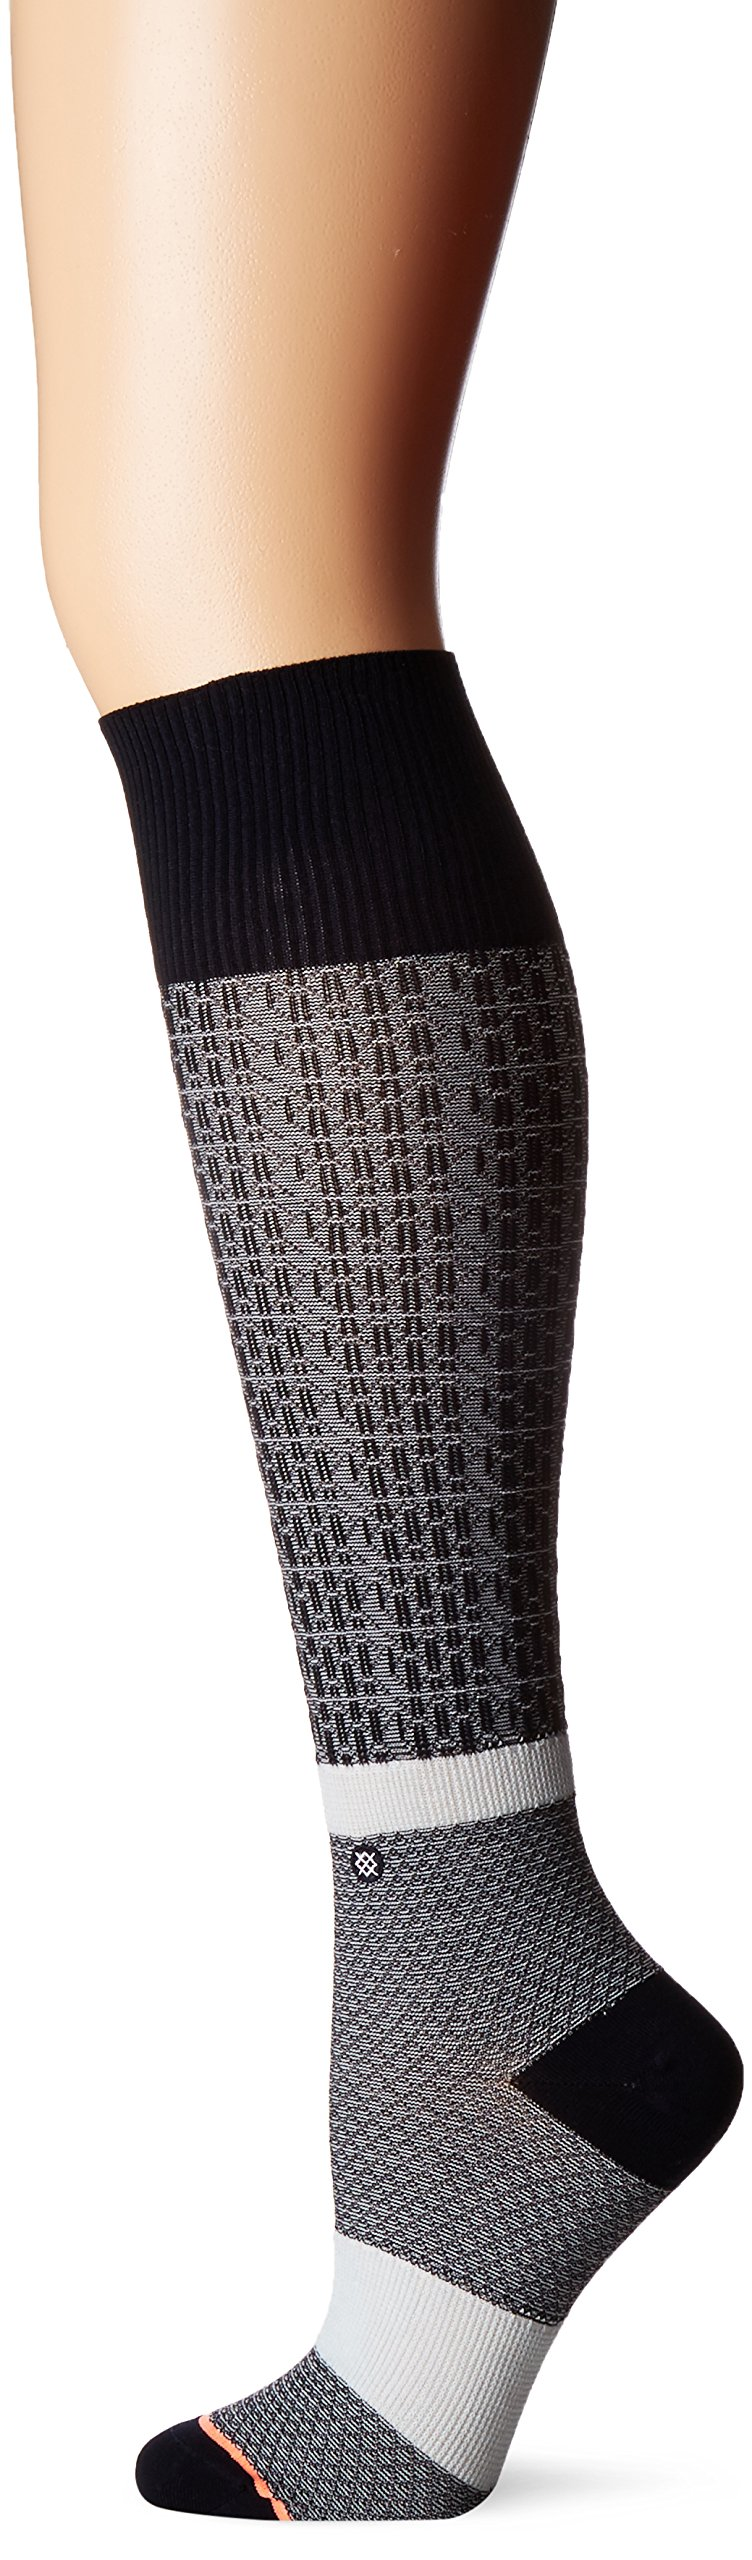 Stance Women's Library Graphic Arch Support Tall Boot Sock, Navy, One Size